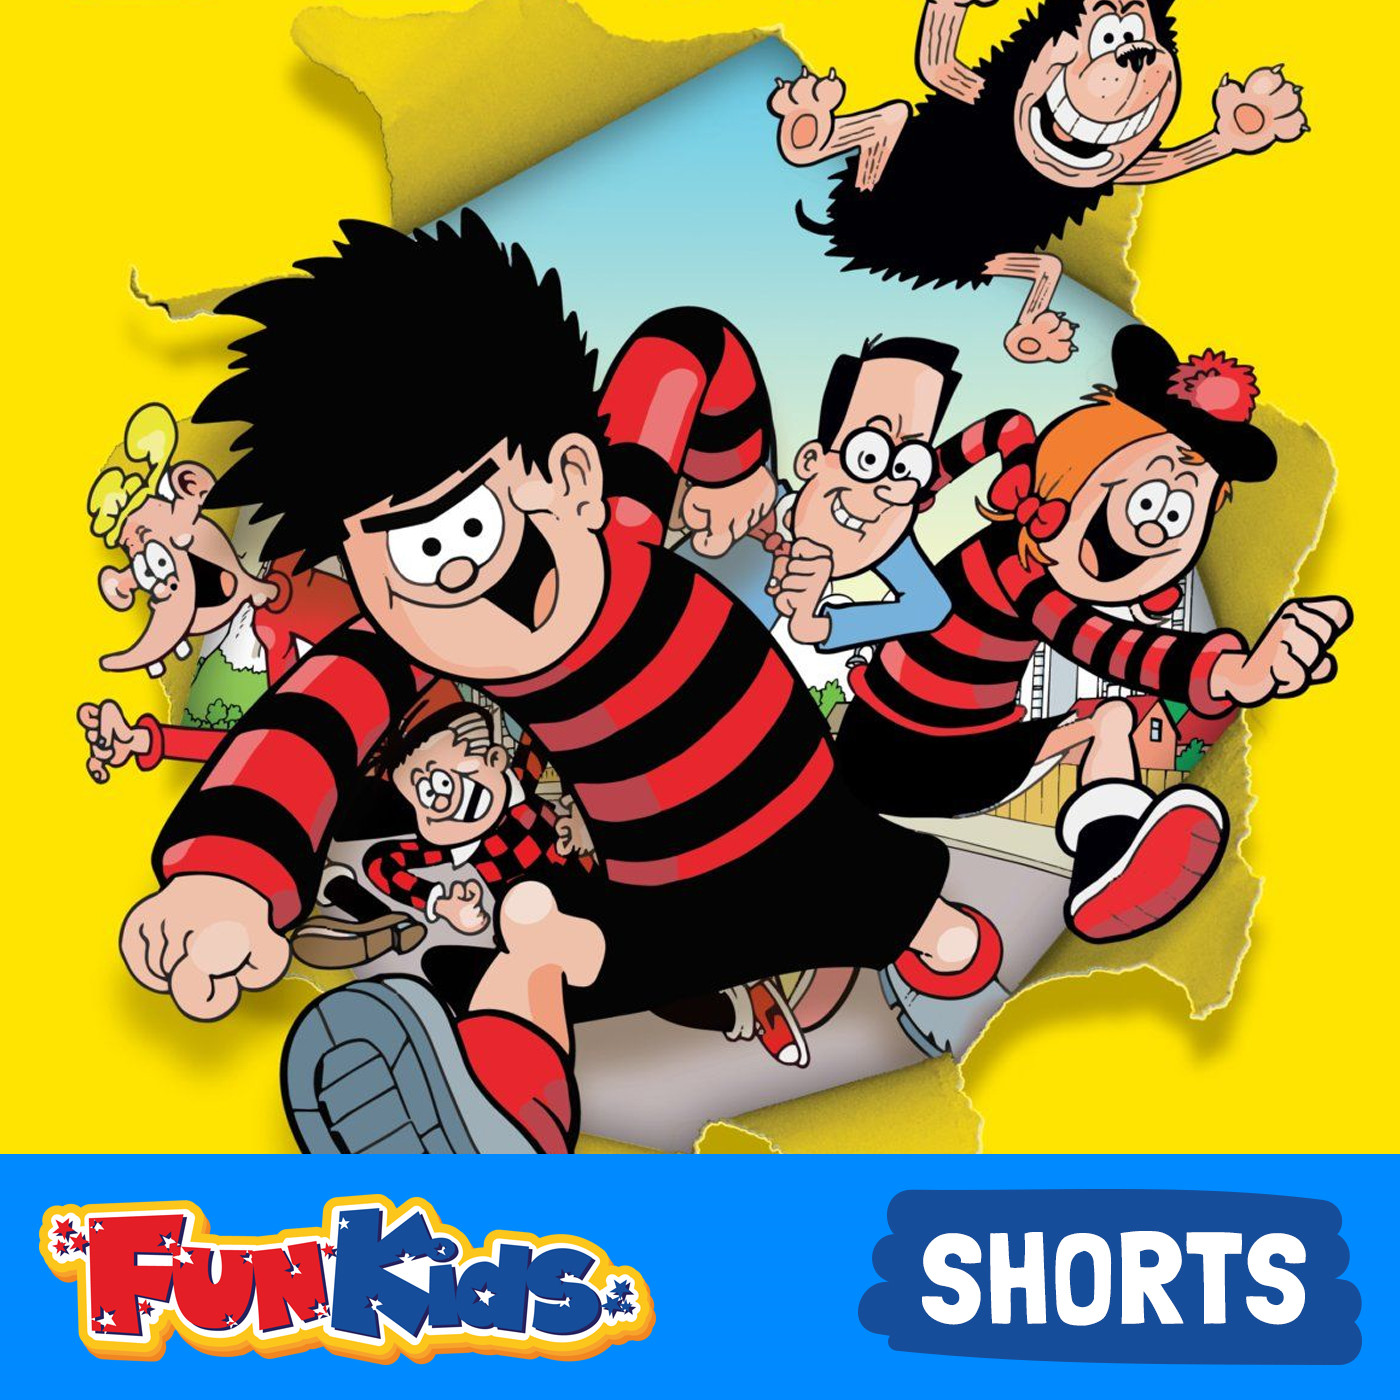 <![CDATA[Beanotown (Dennis the Menace and Gnasher) on Fun Kids]]>